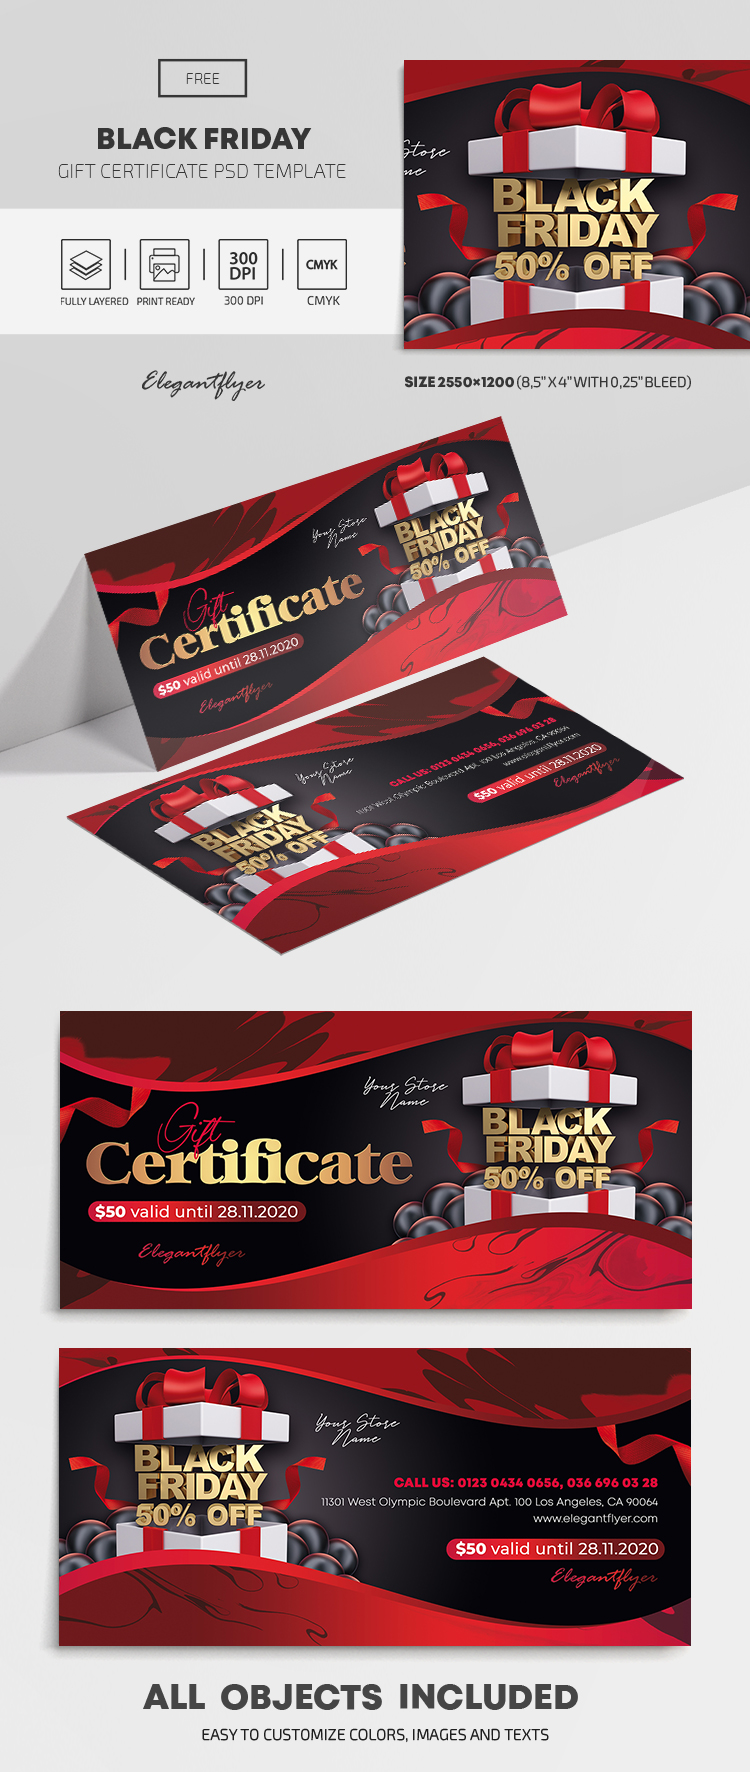 Black Friday – Free Gift Certificate Template in PSD